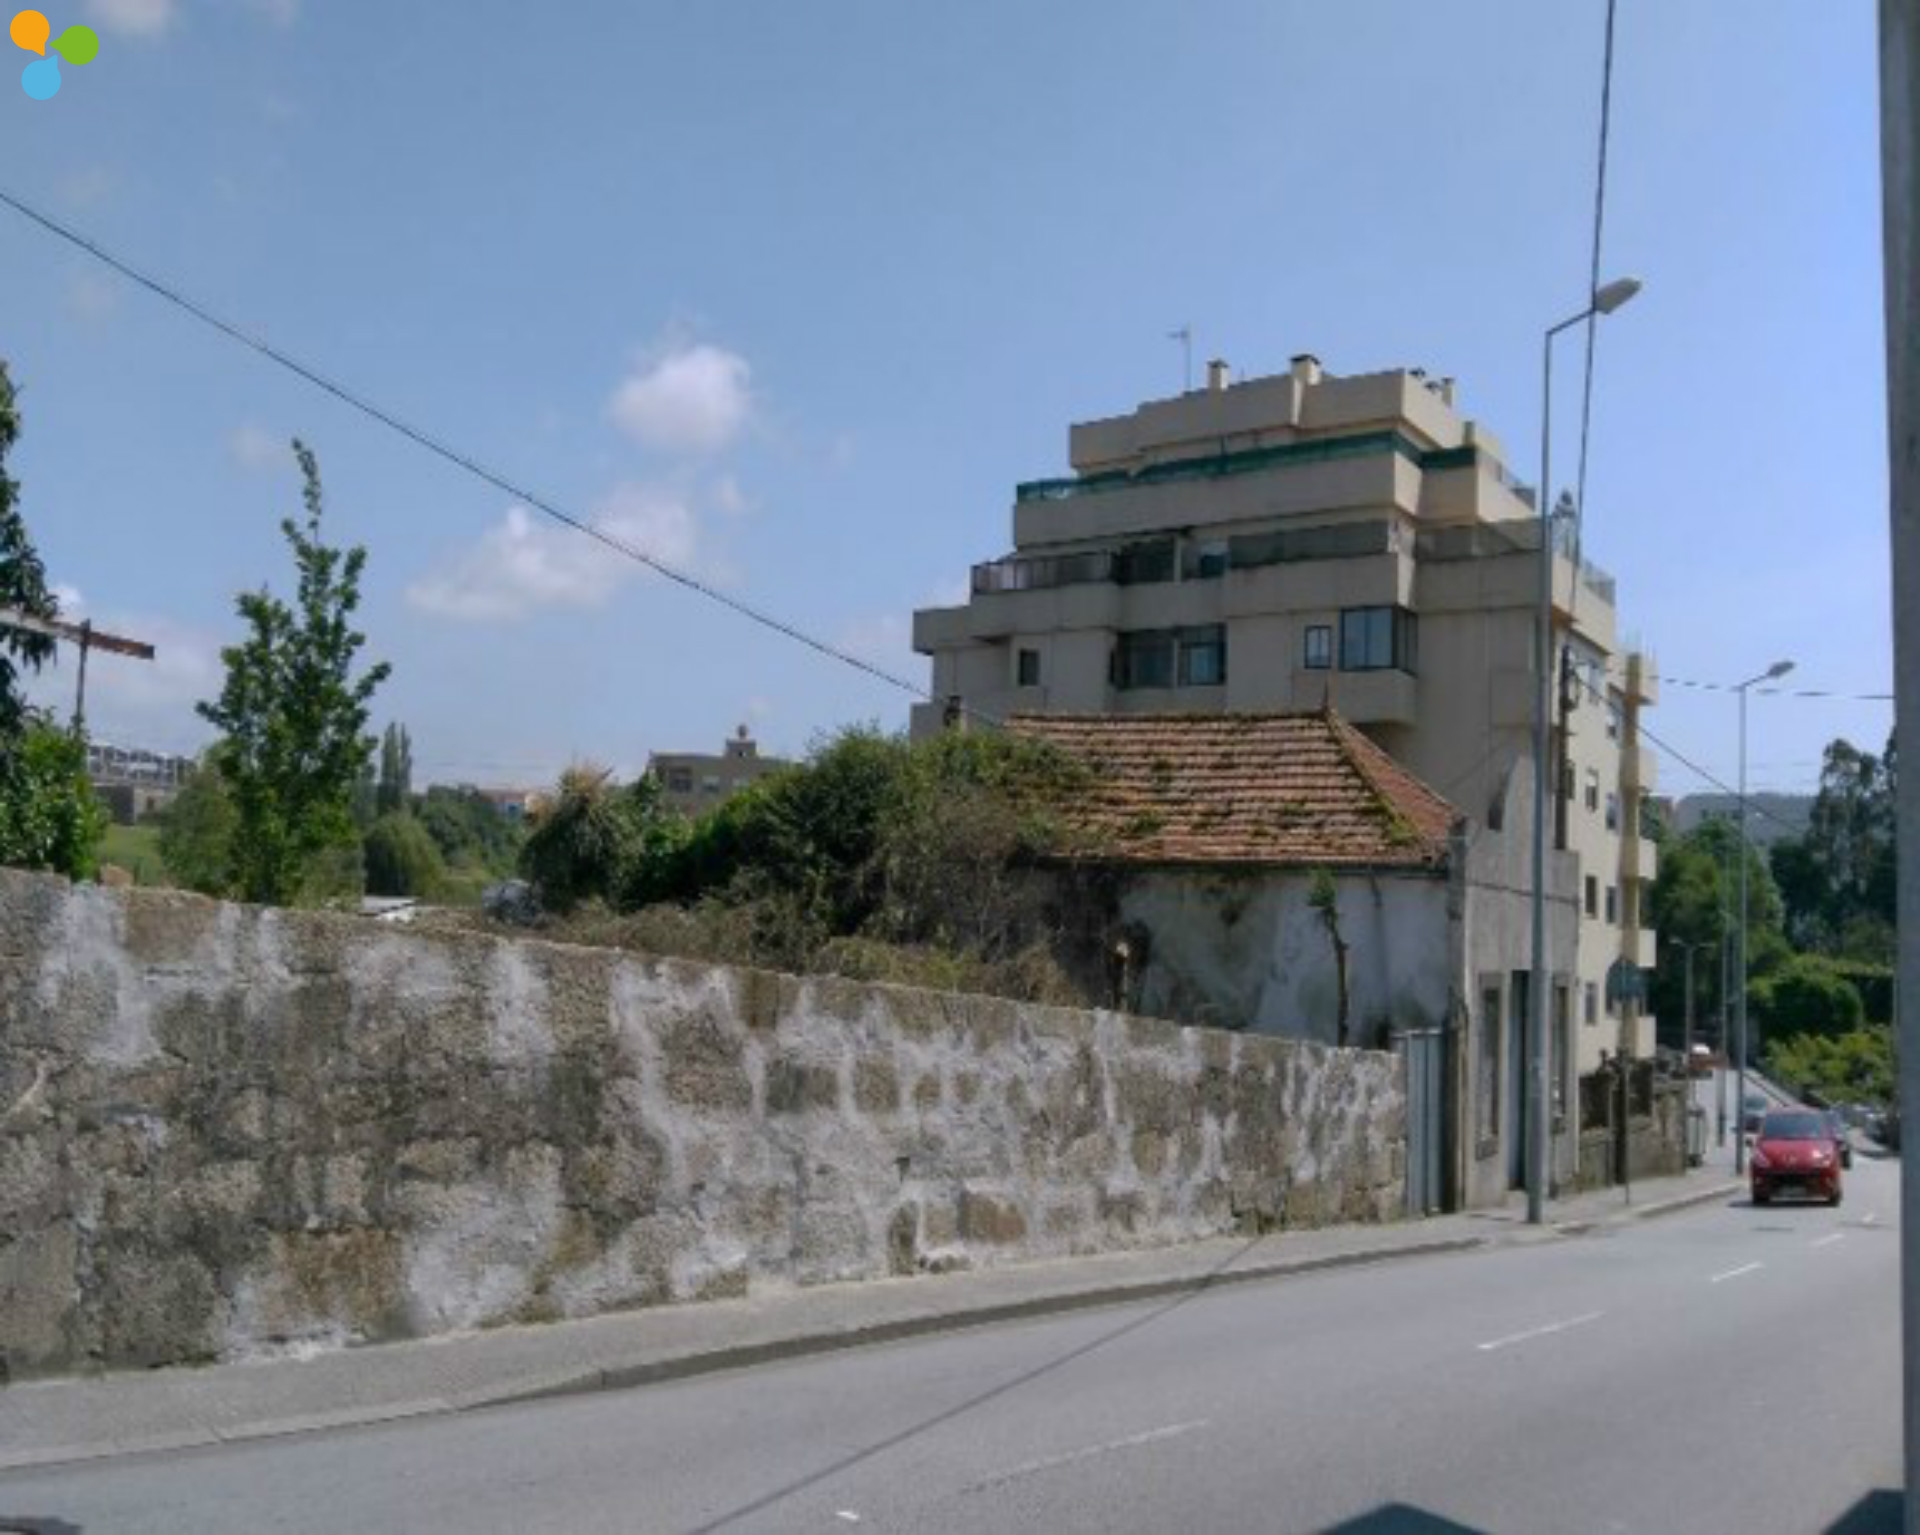 Outside view